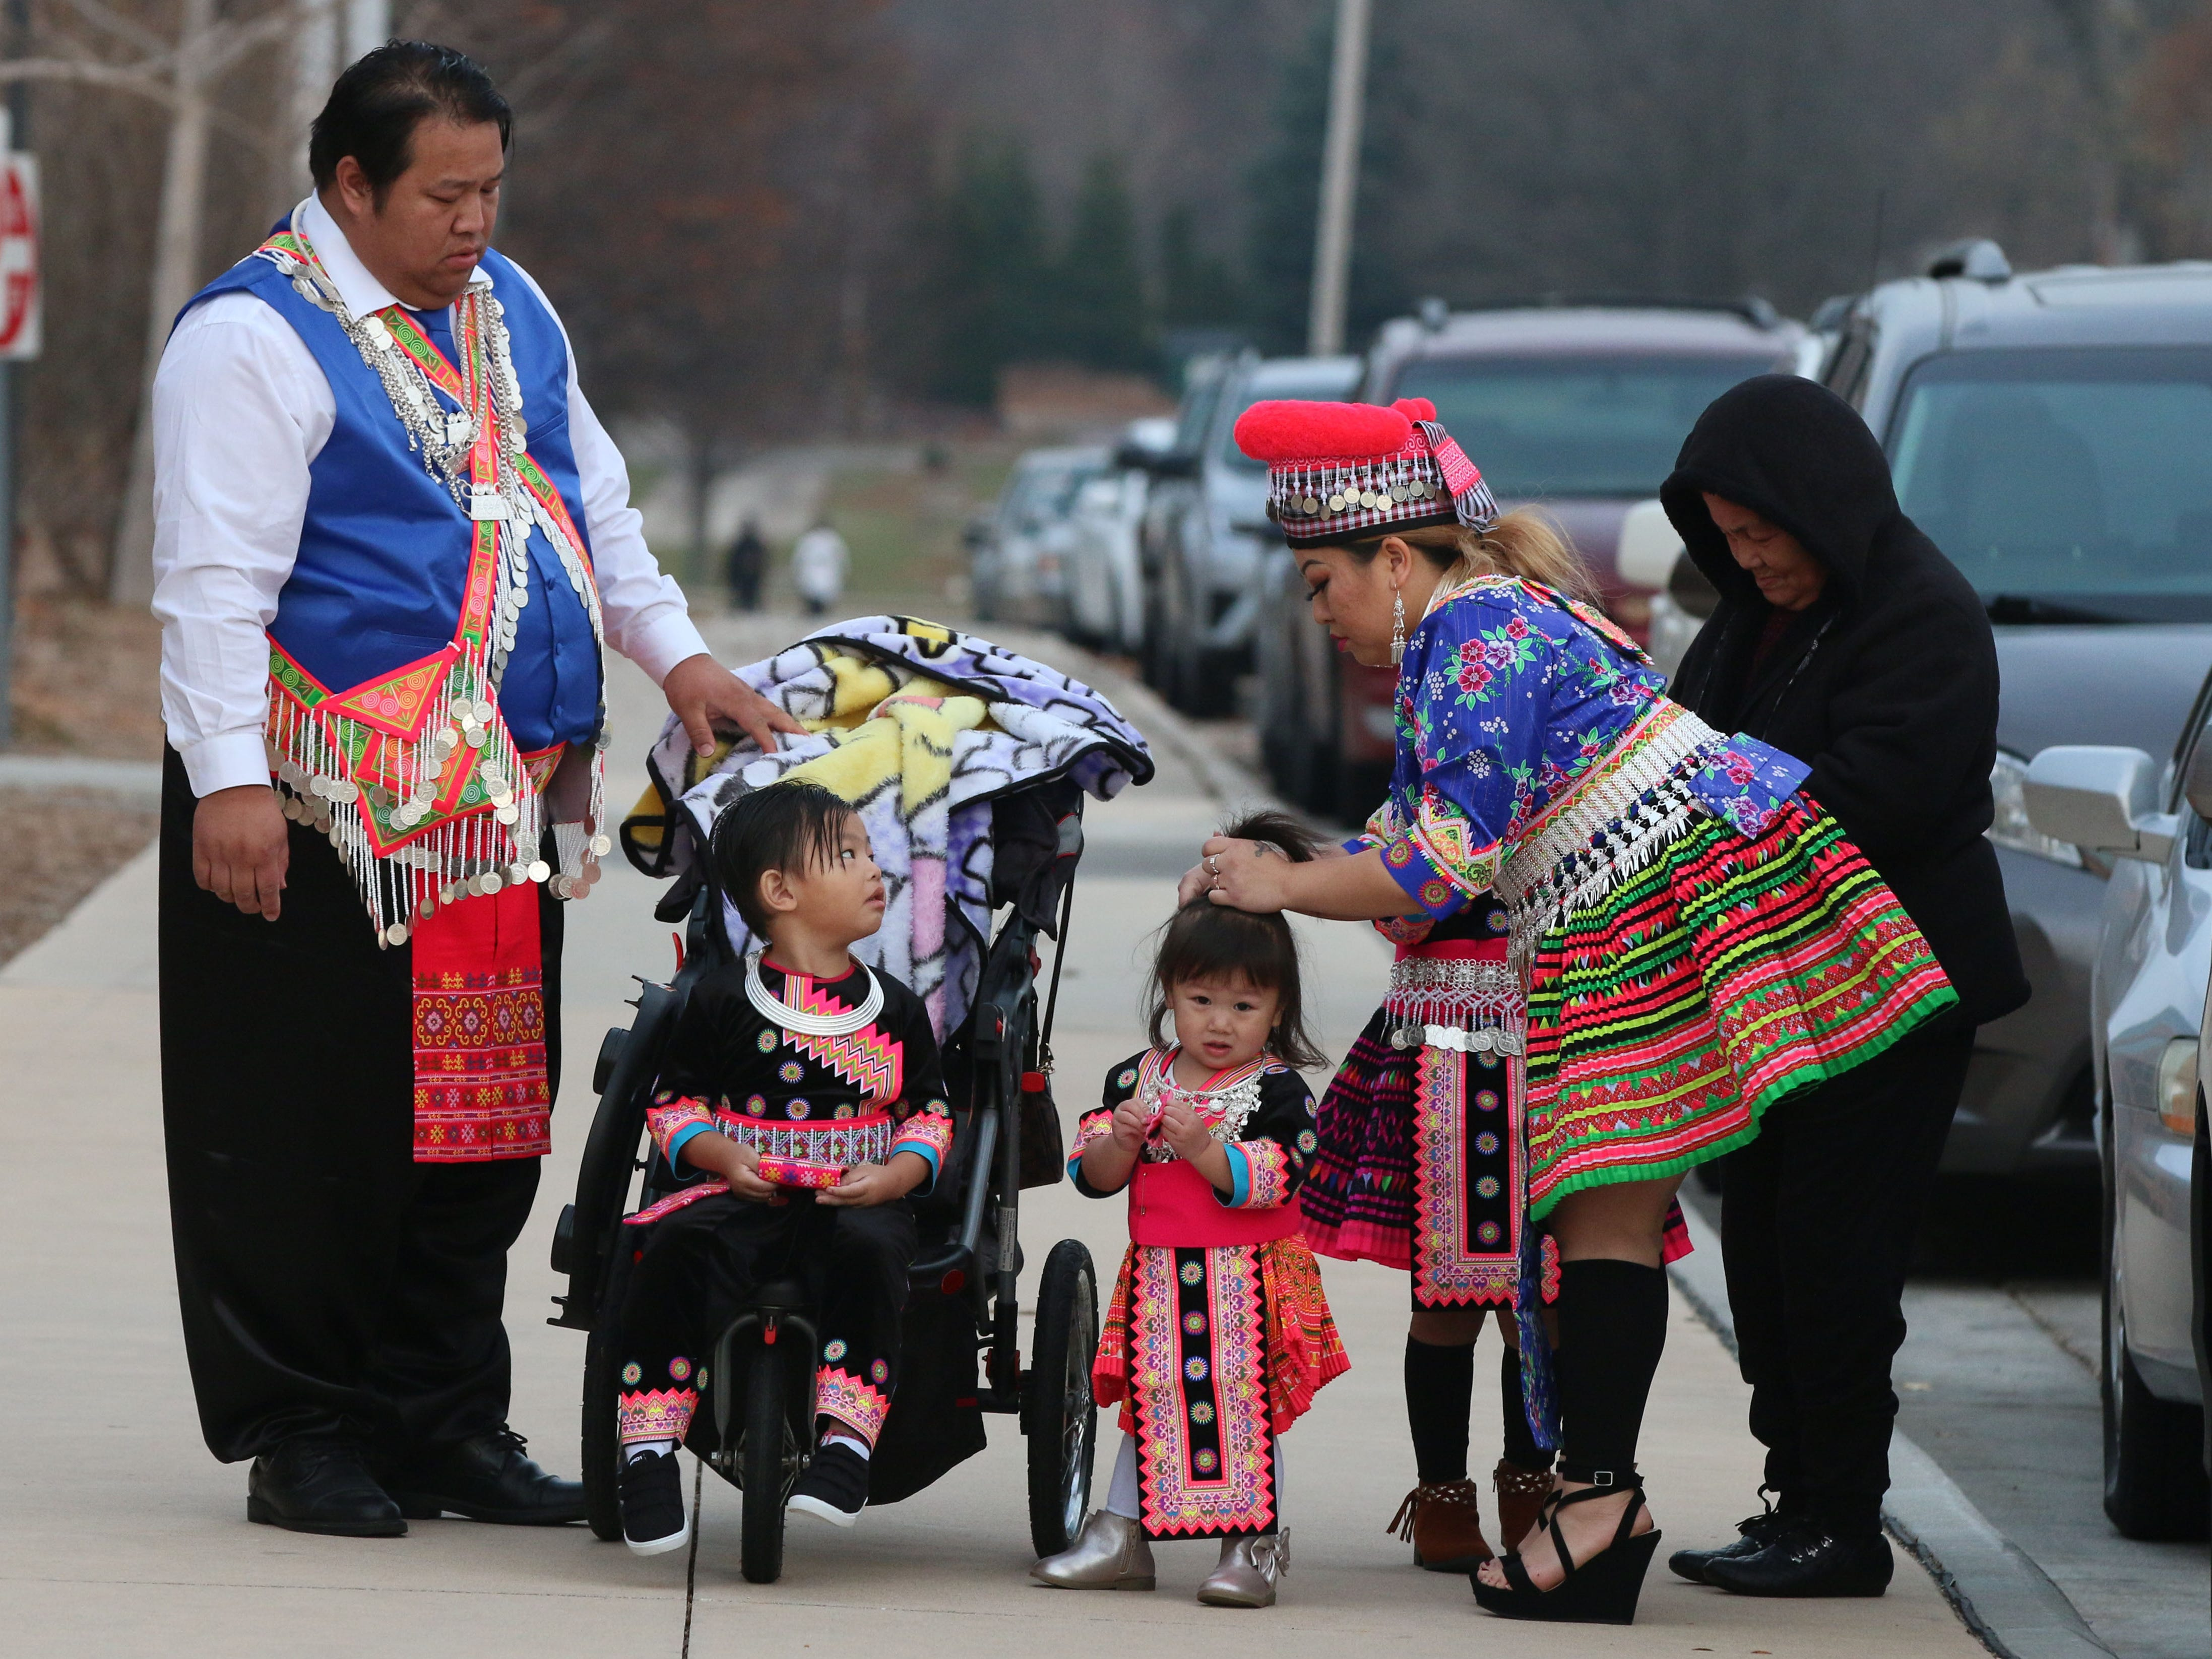 A Hmong family prepares their outfits before entering the Hmong New Year Celebration at Sheboygan North High School, Friday, November 23, 2018, in Sheboygan, Wis.